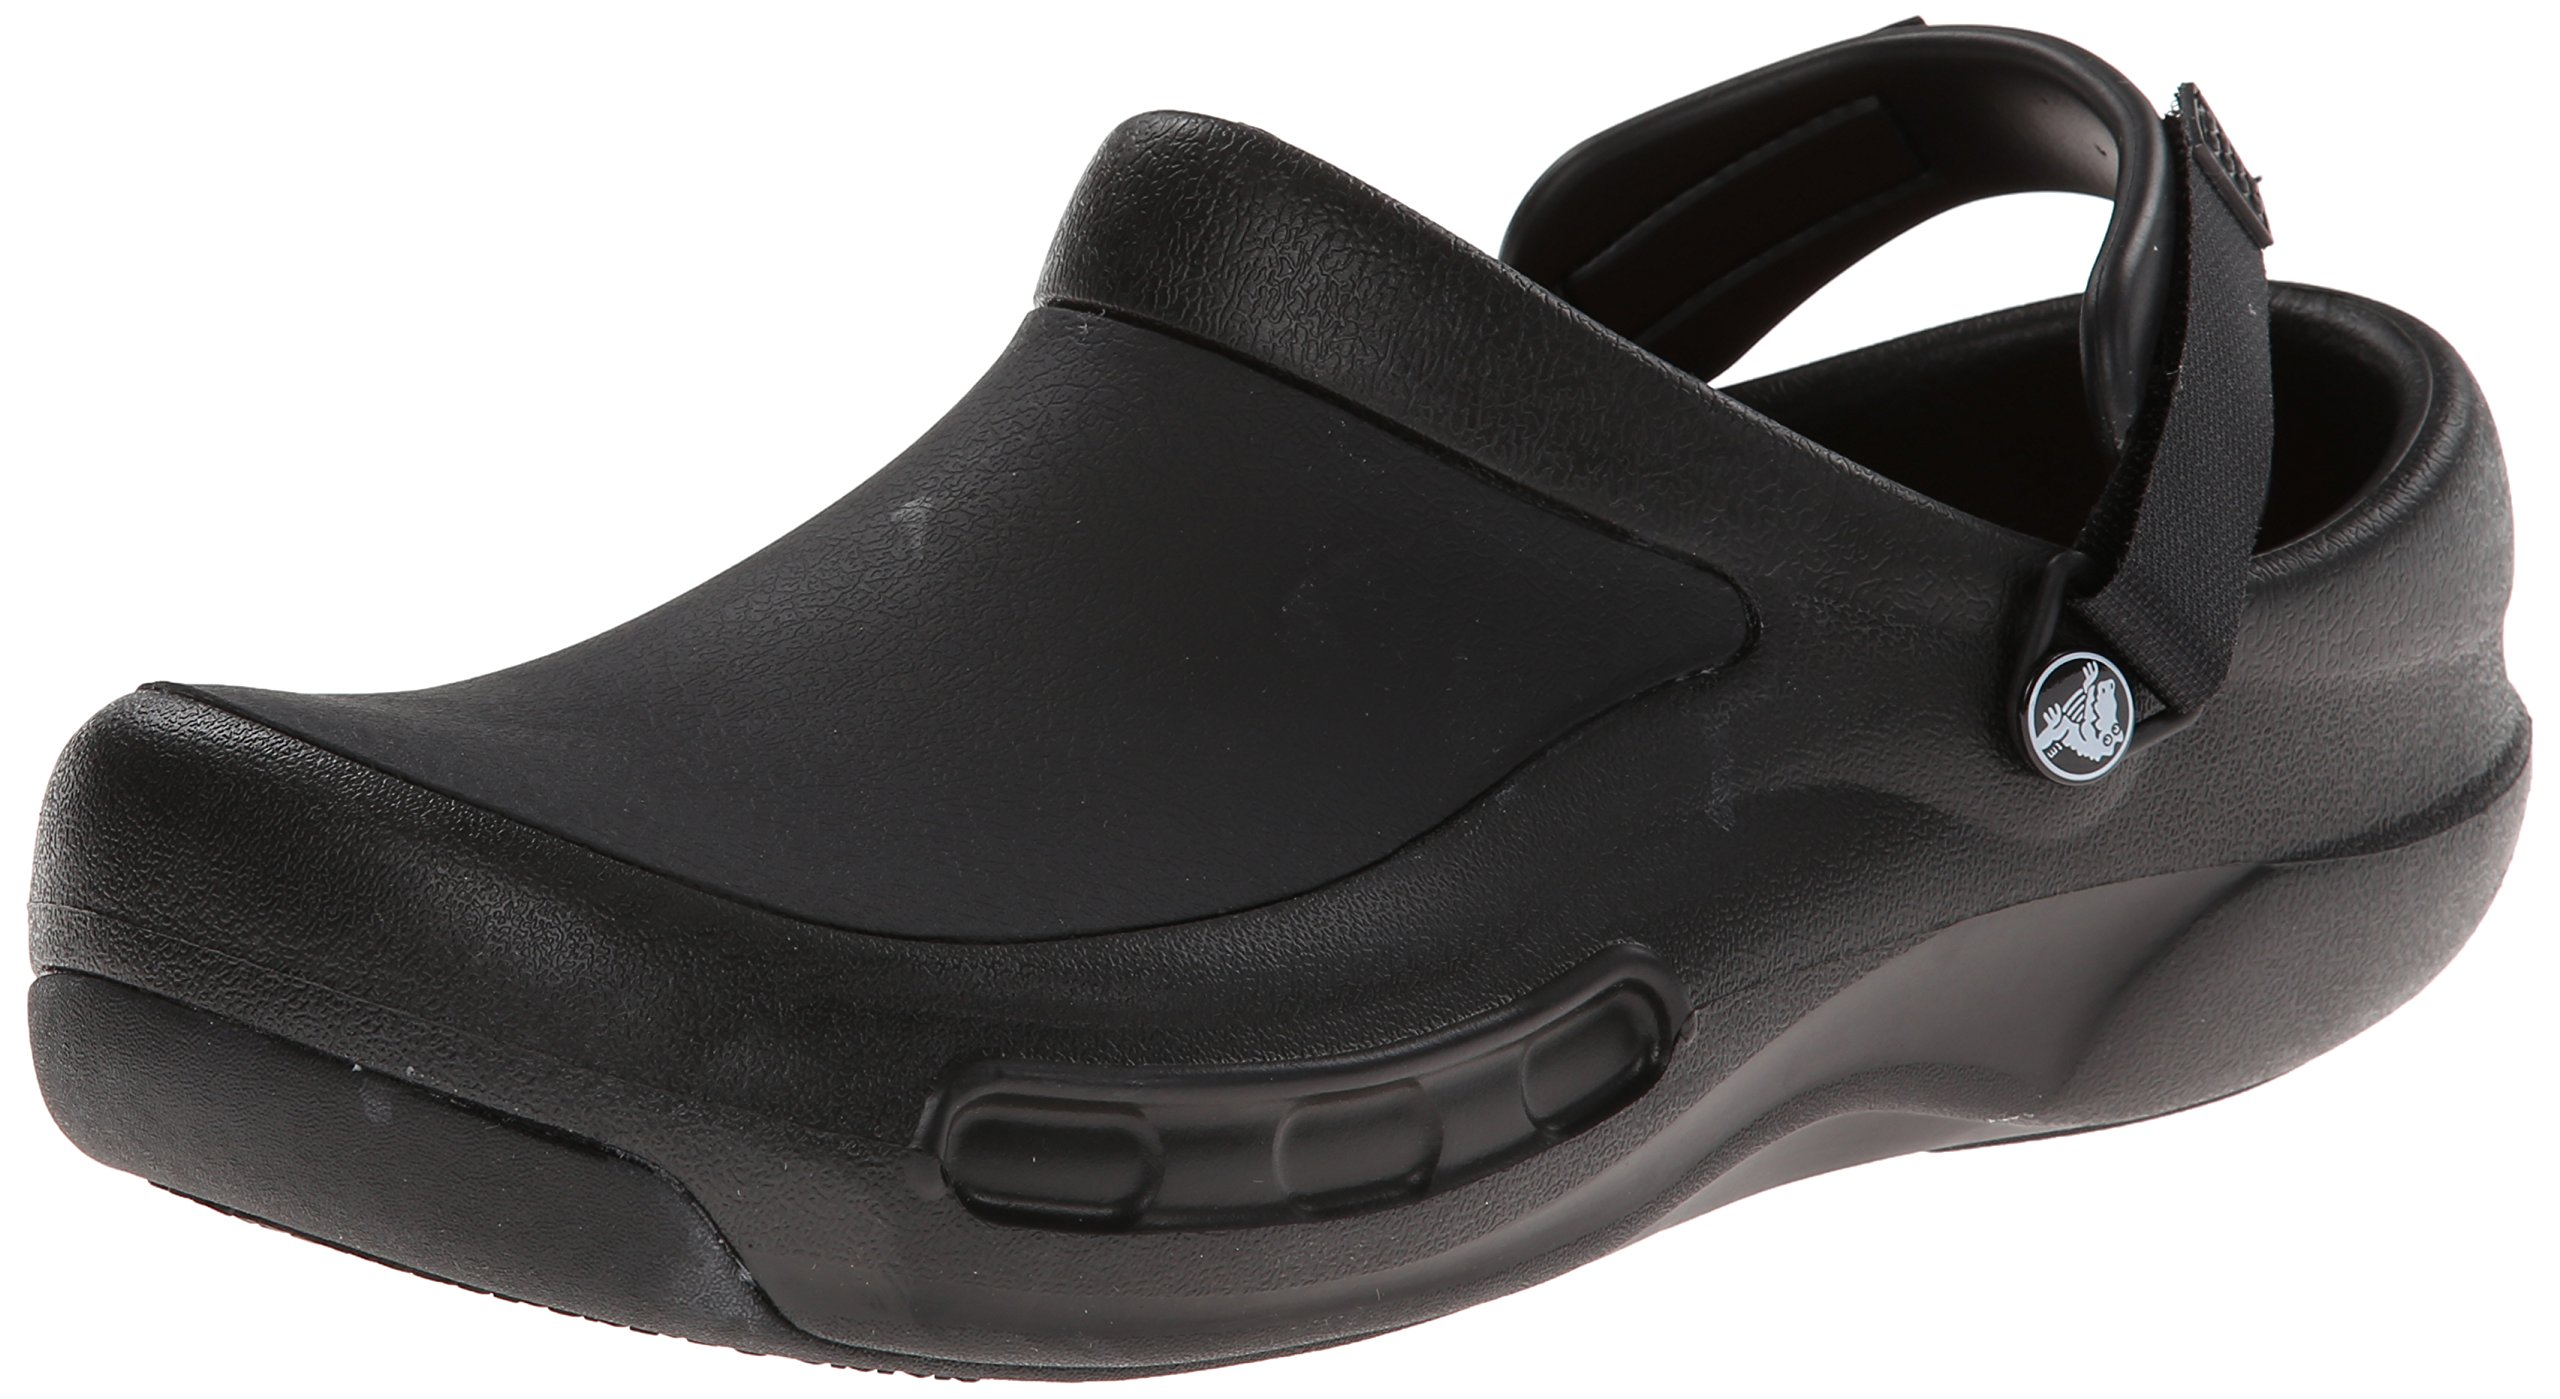 crocs Men's 15010 Bistro Pro Clog,Black,14 M US